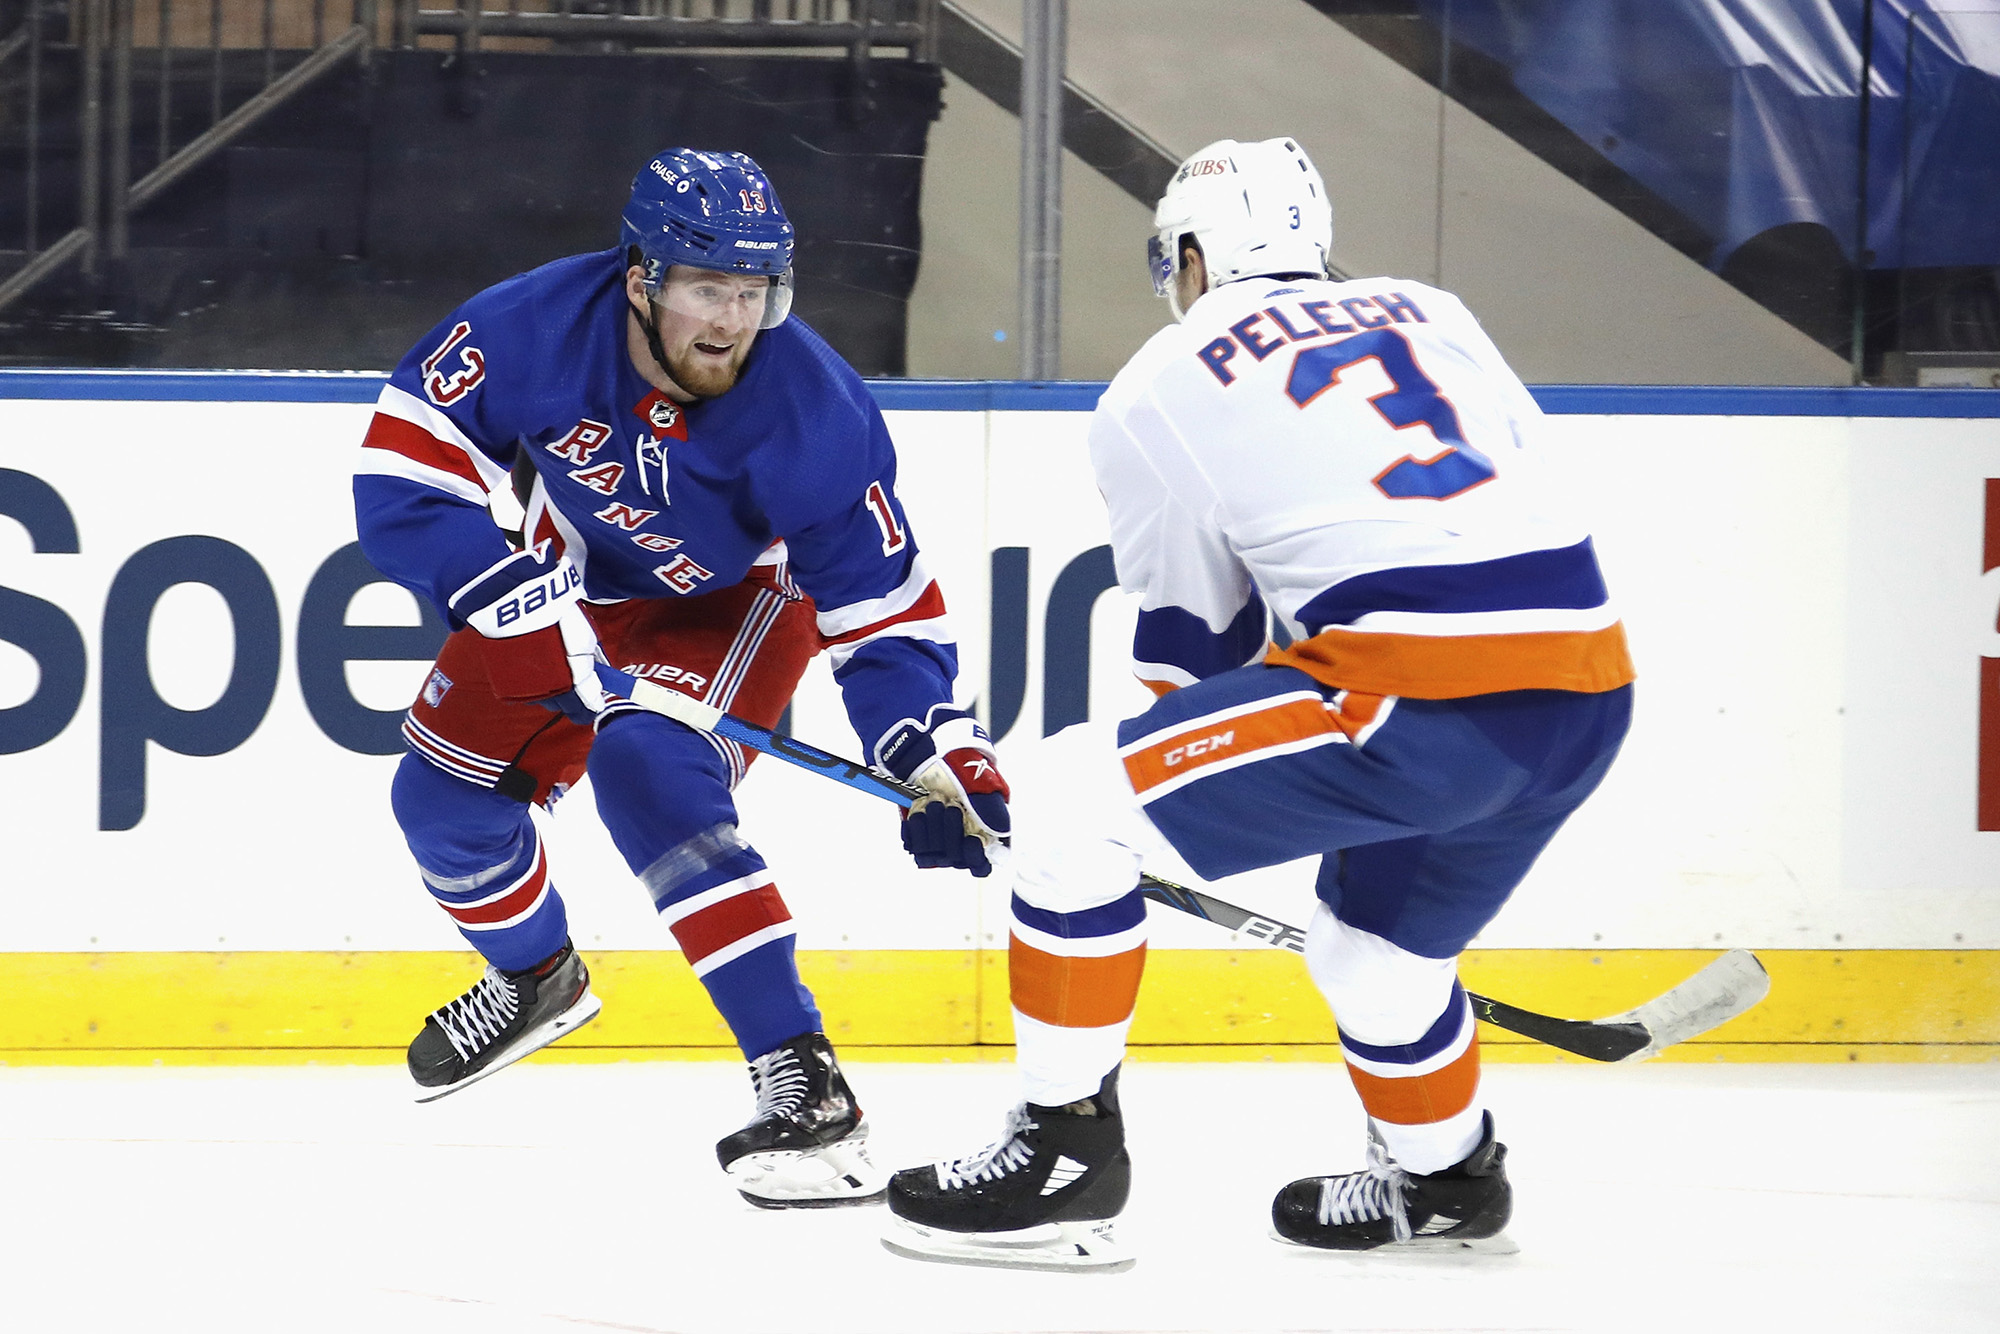 Rangers rookies Alexis Lafreniere, K'Andre Miller had it rough in debuts